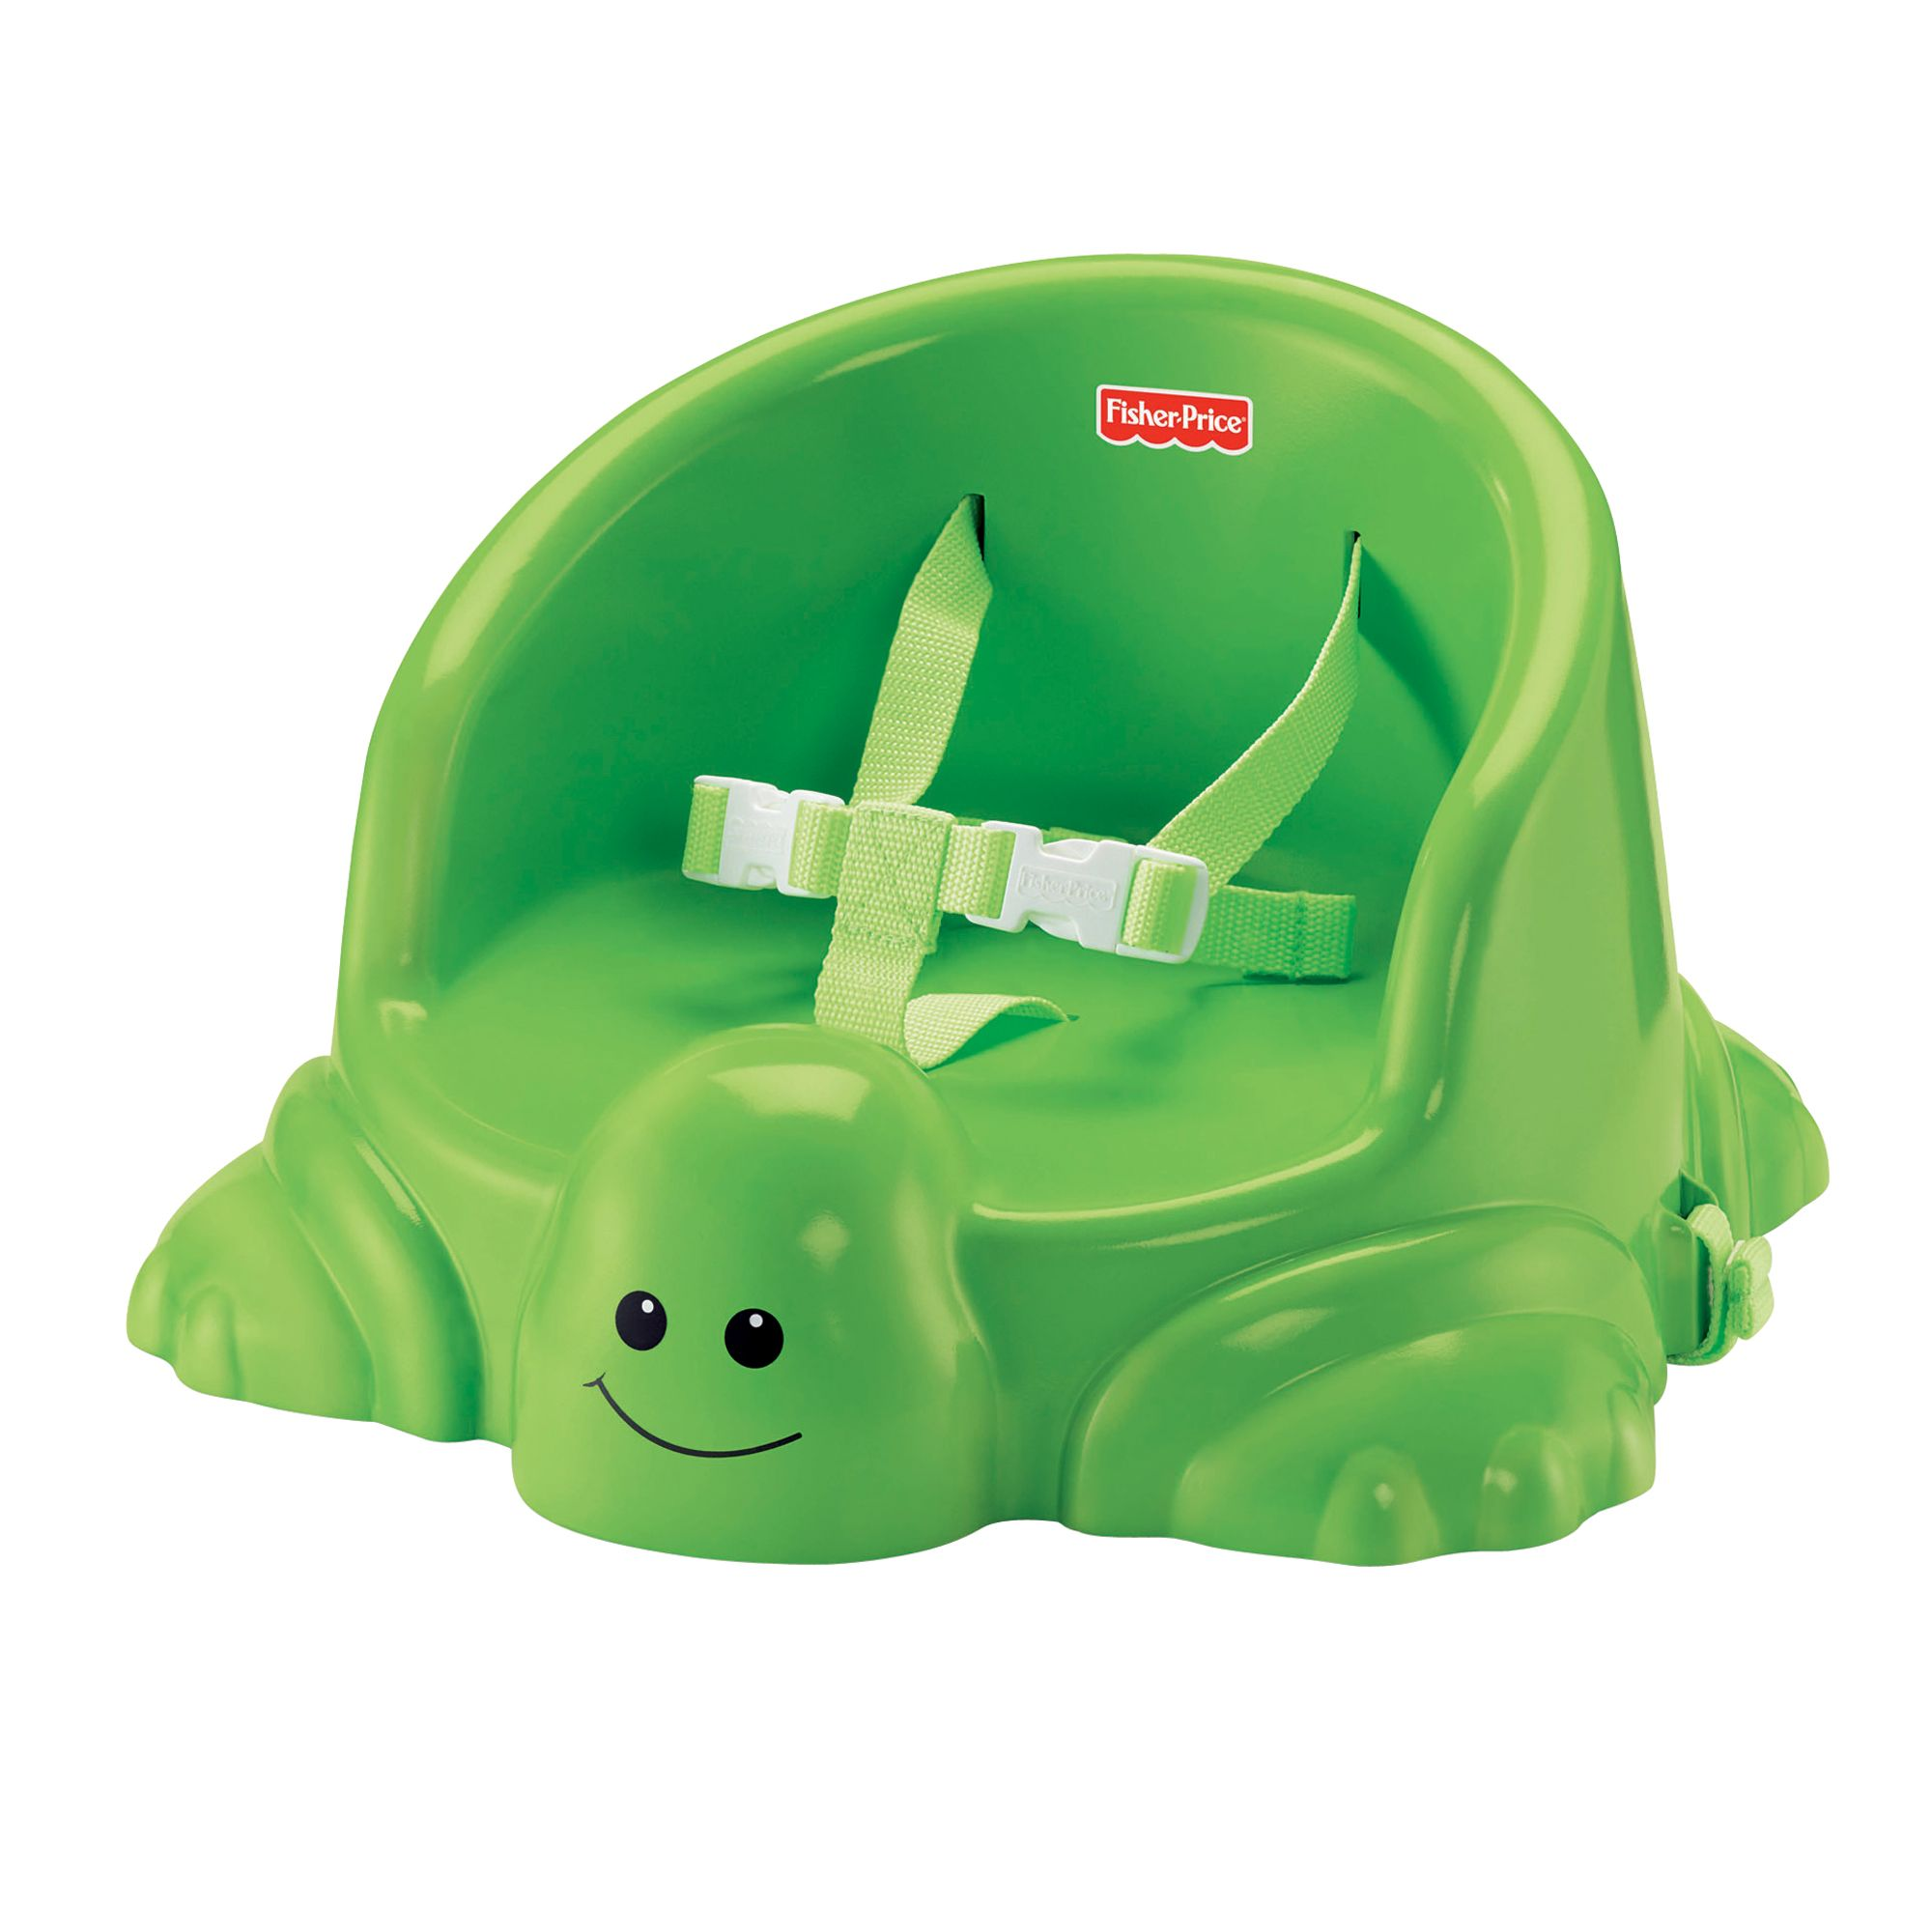 fisher price booster high chair dining seat covers spotlight table time turtle baby gear